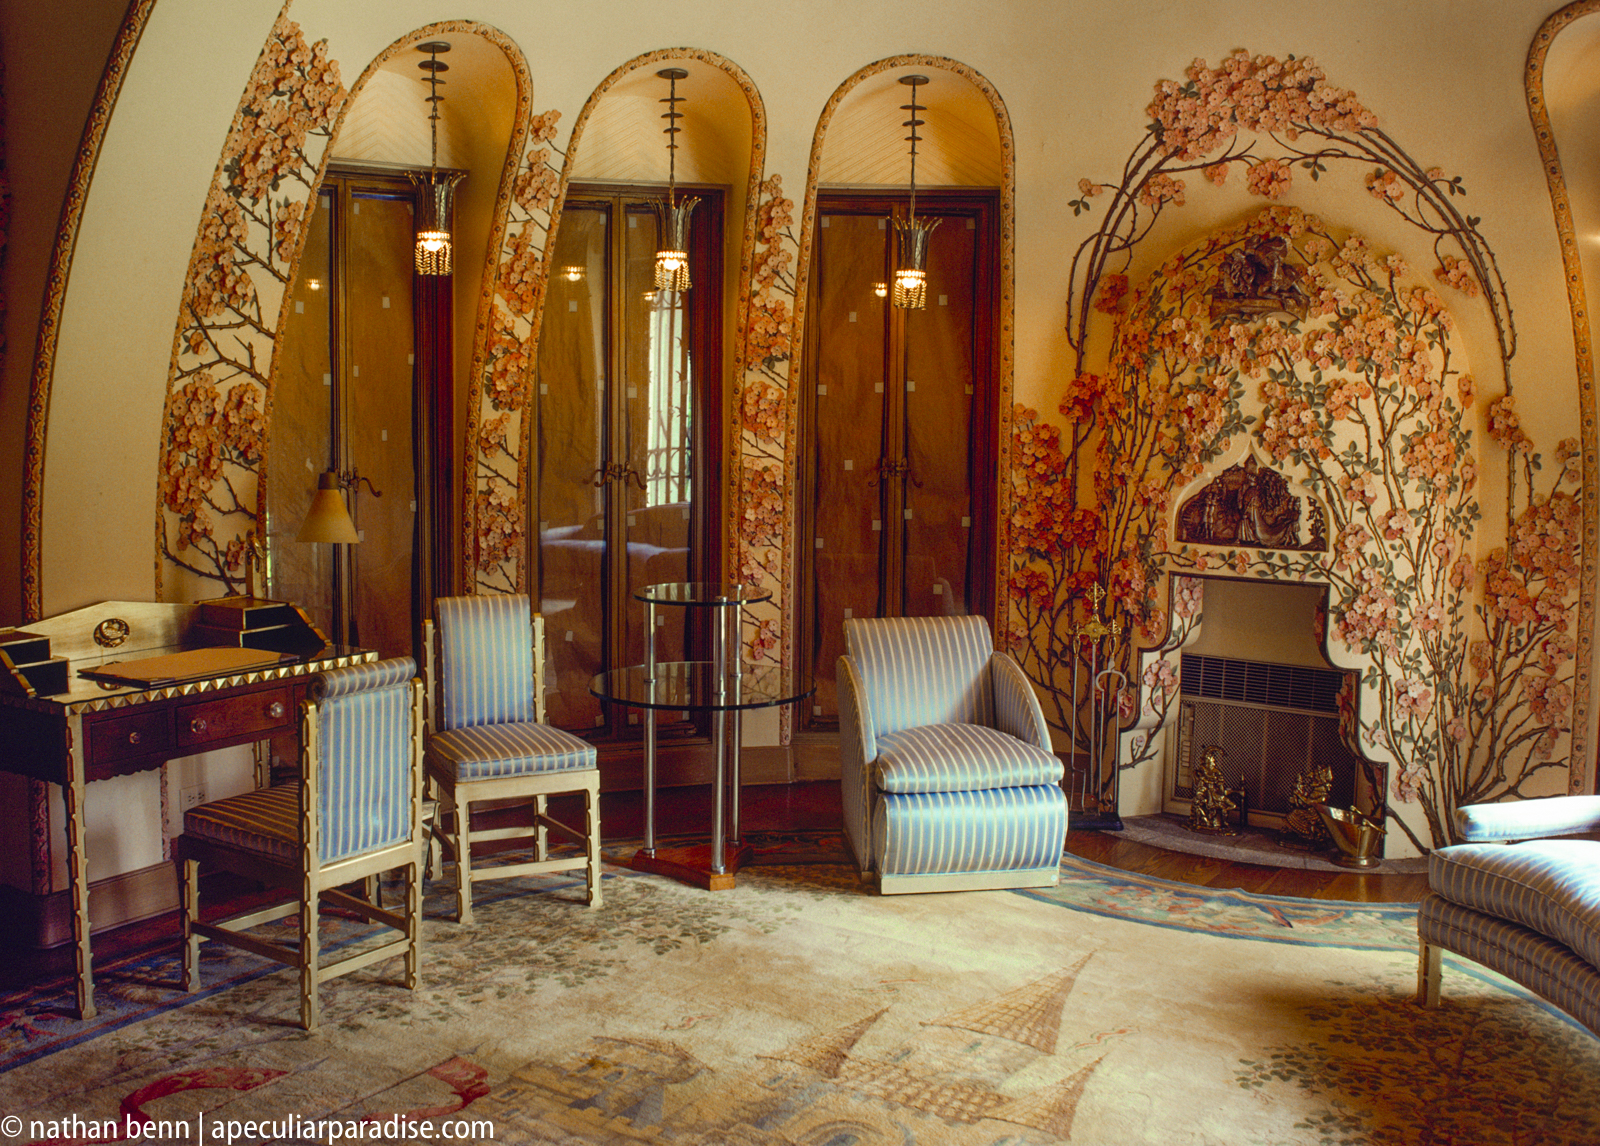 Dina Merrill's childhood bedroom at Mar-a-Lago, designed by Joseph Urban.